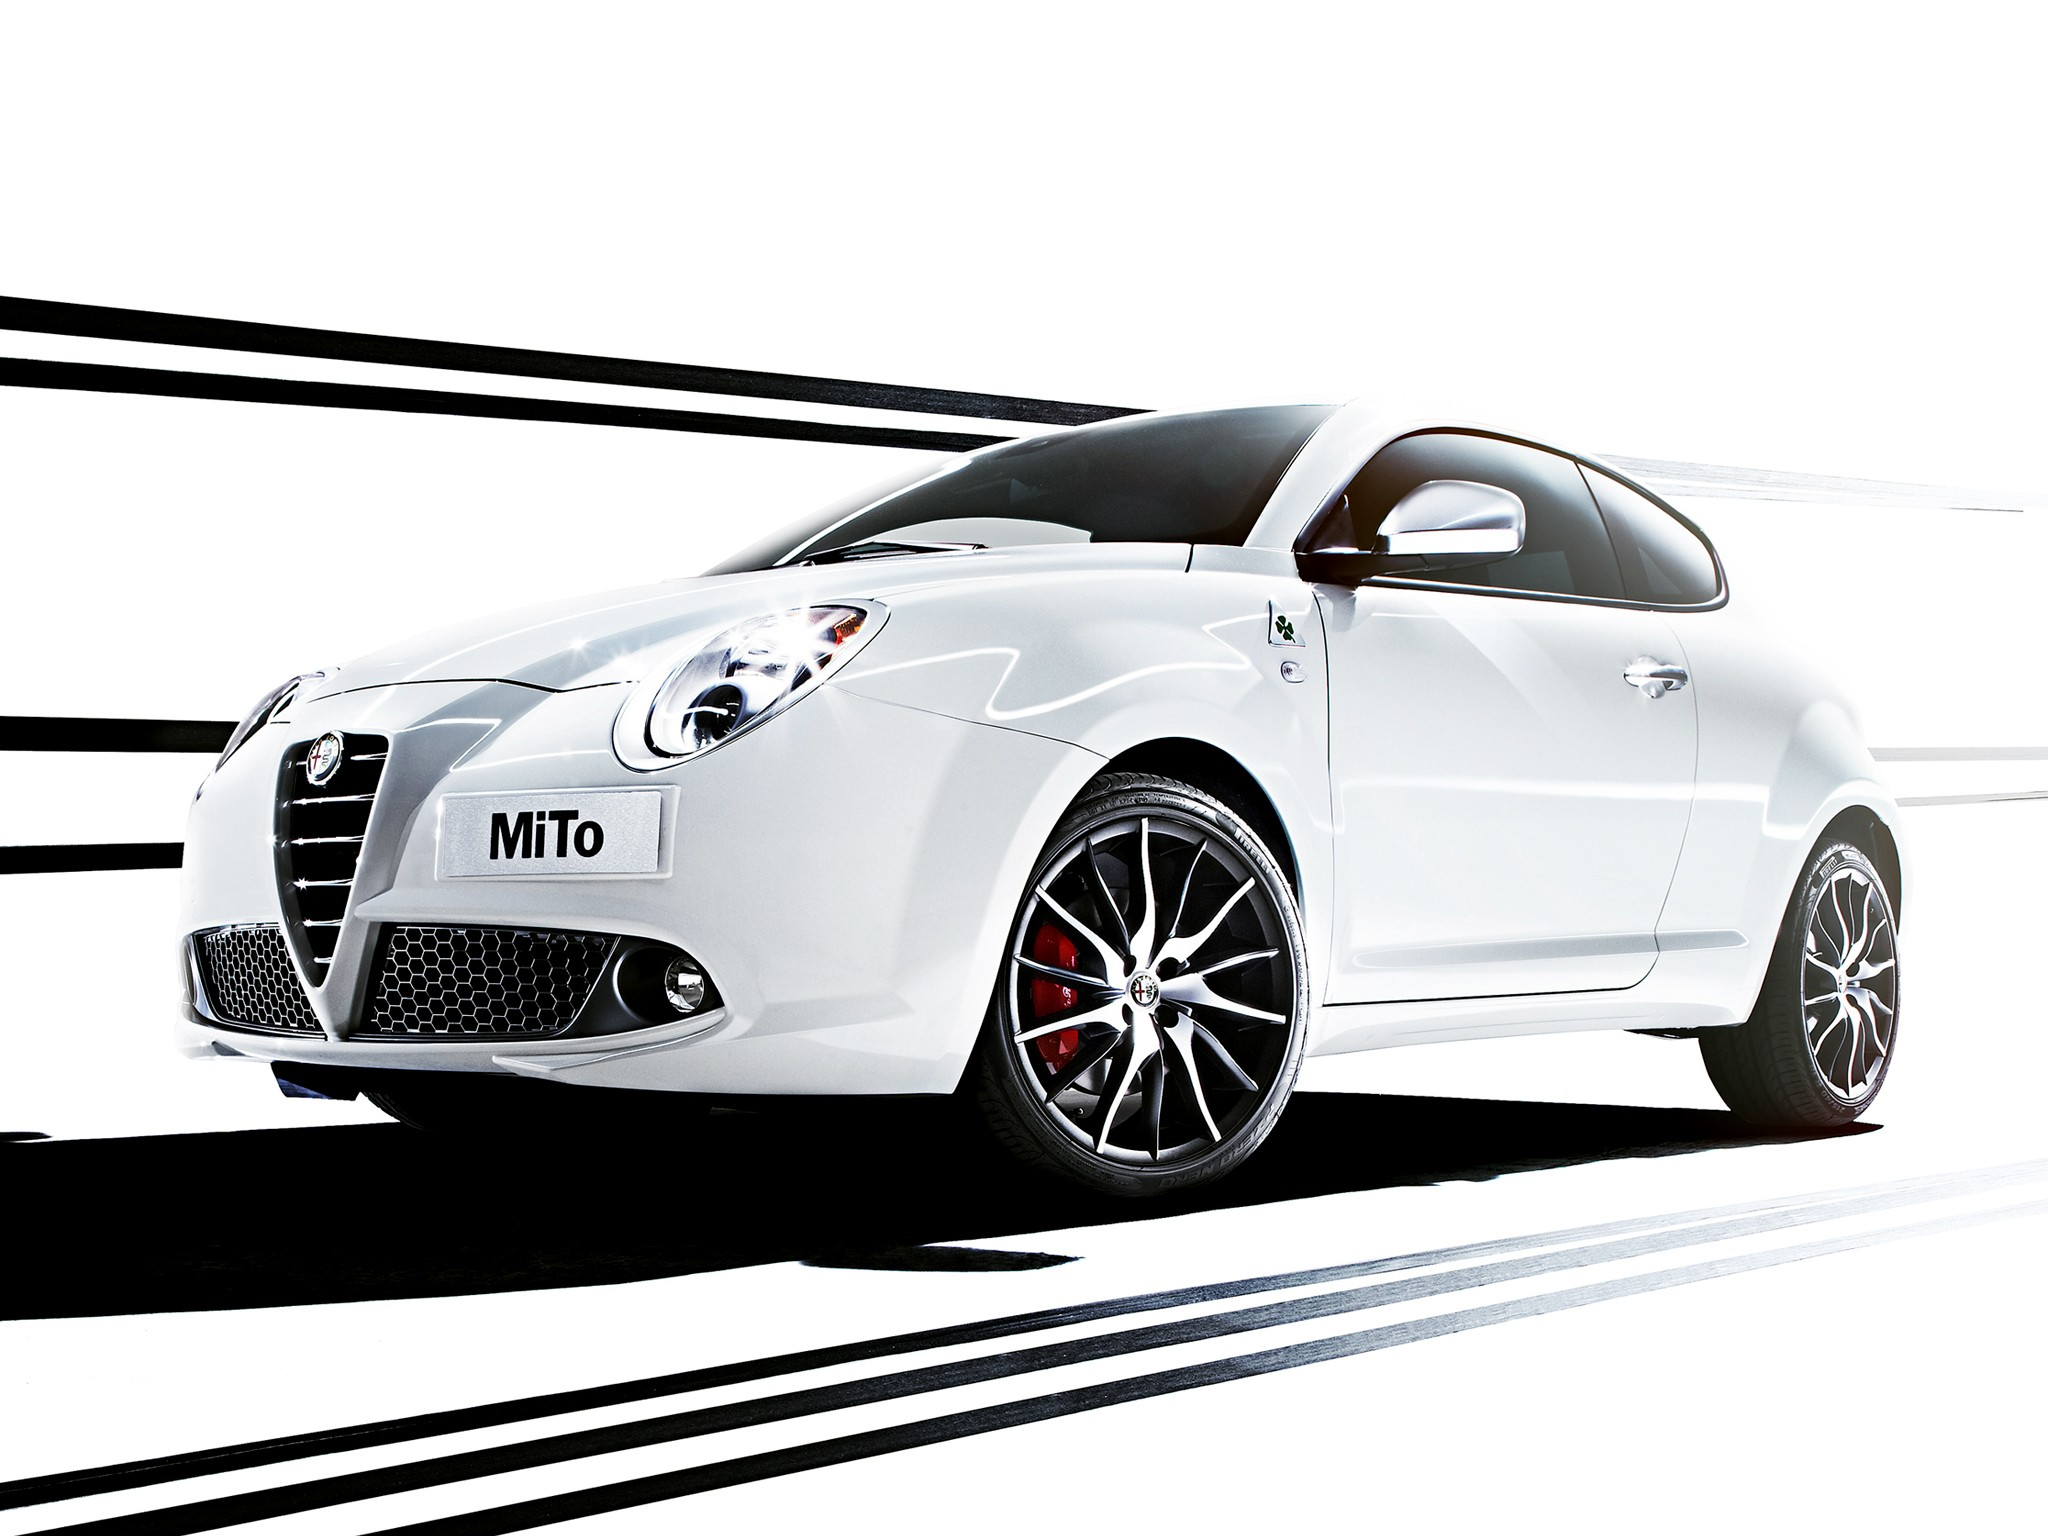 alfa romeo mito quadrifoglio verde 2009 2010 2011. Black Bedroom Furniture Sets. Home Design Ideas